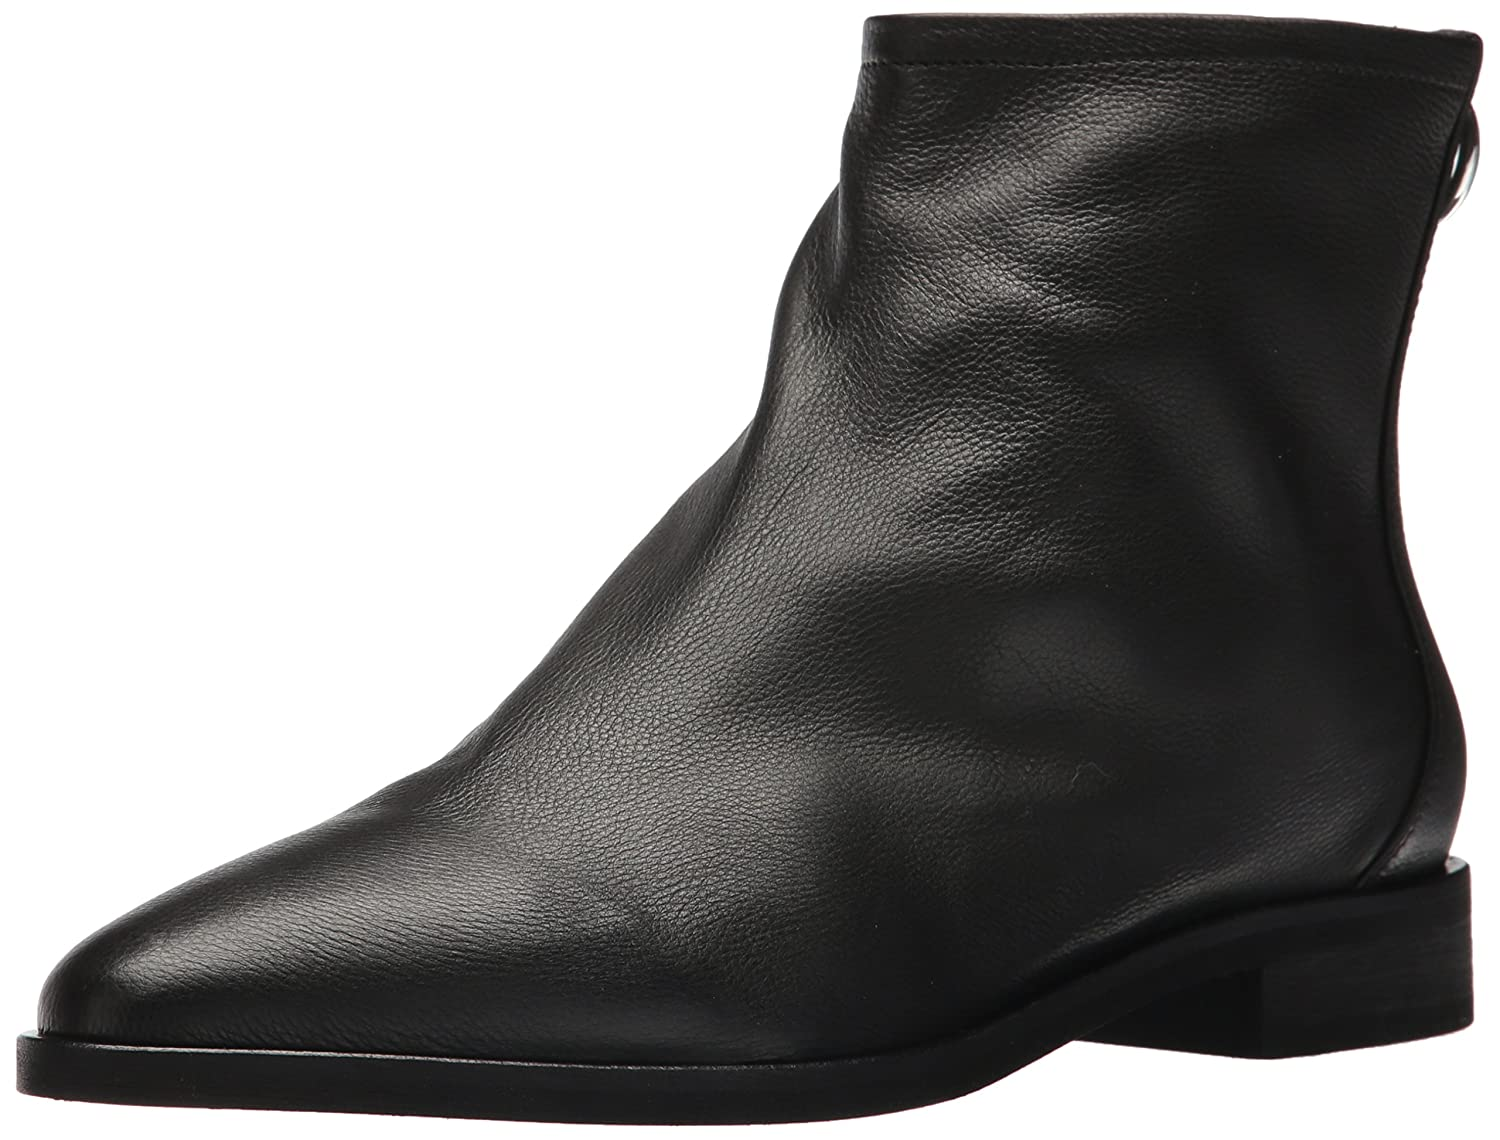 Via Spiga Women's Edie Ankle Boot B074CYKTSV 9 B(M) US|Black Leather